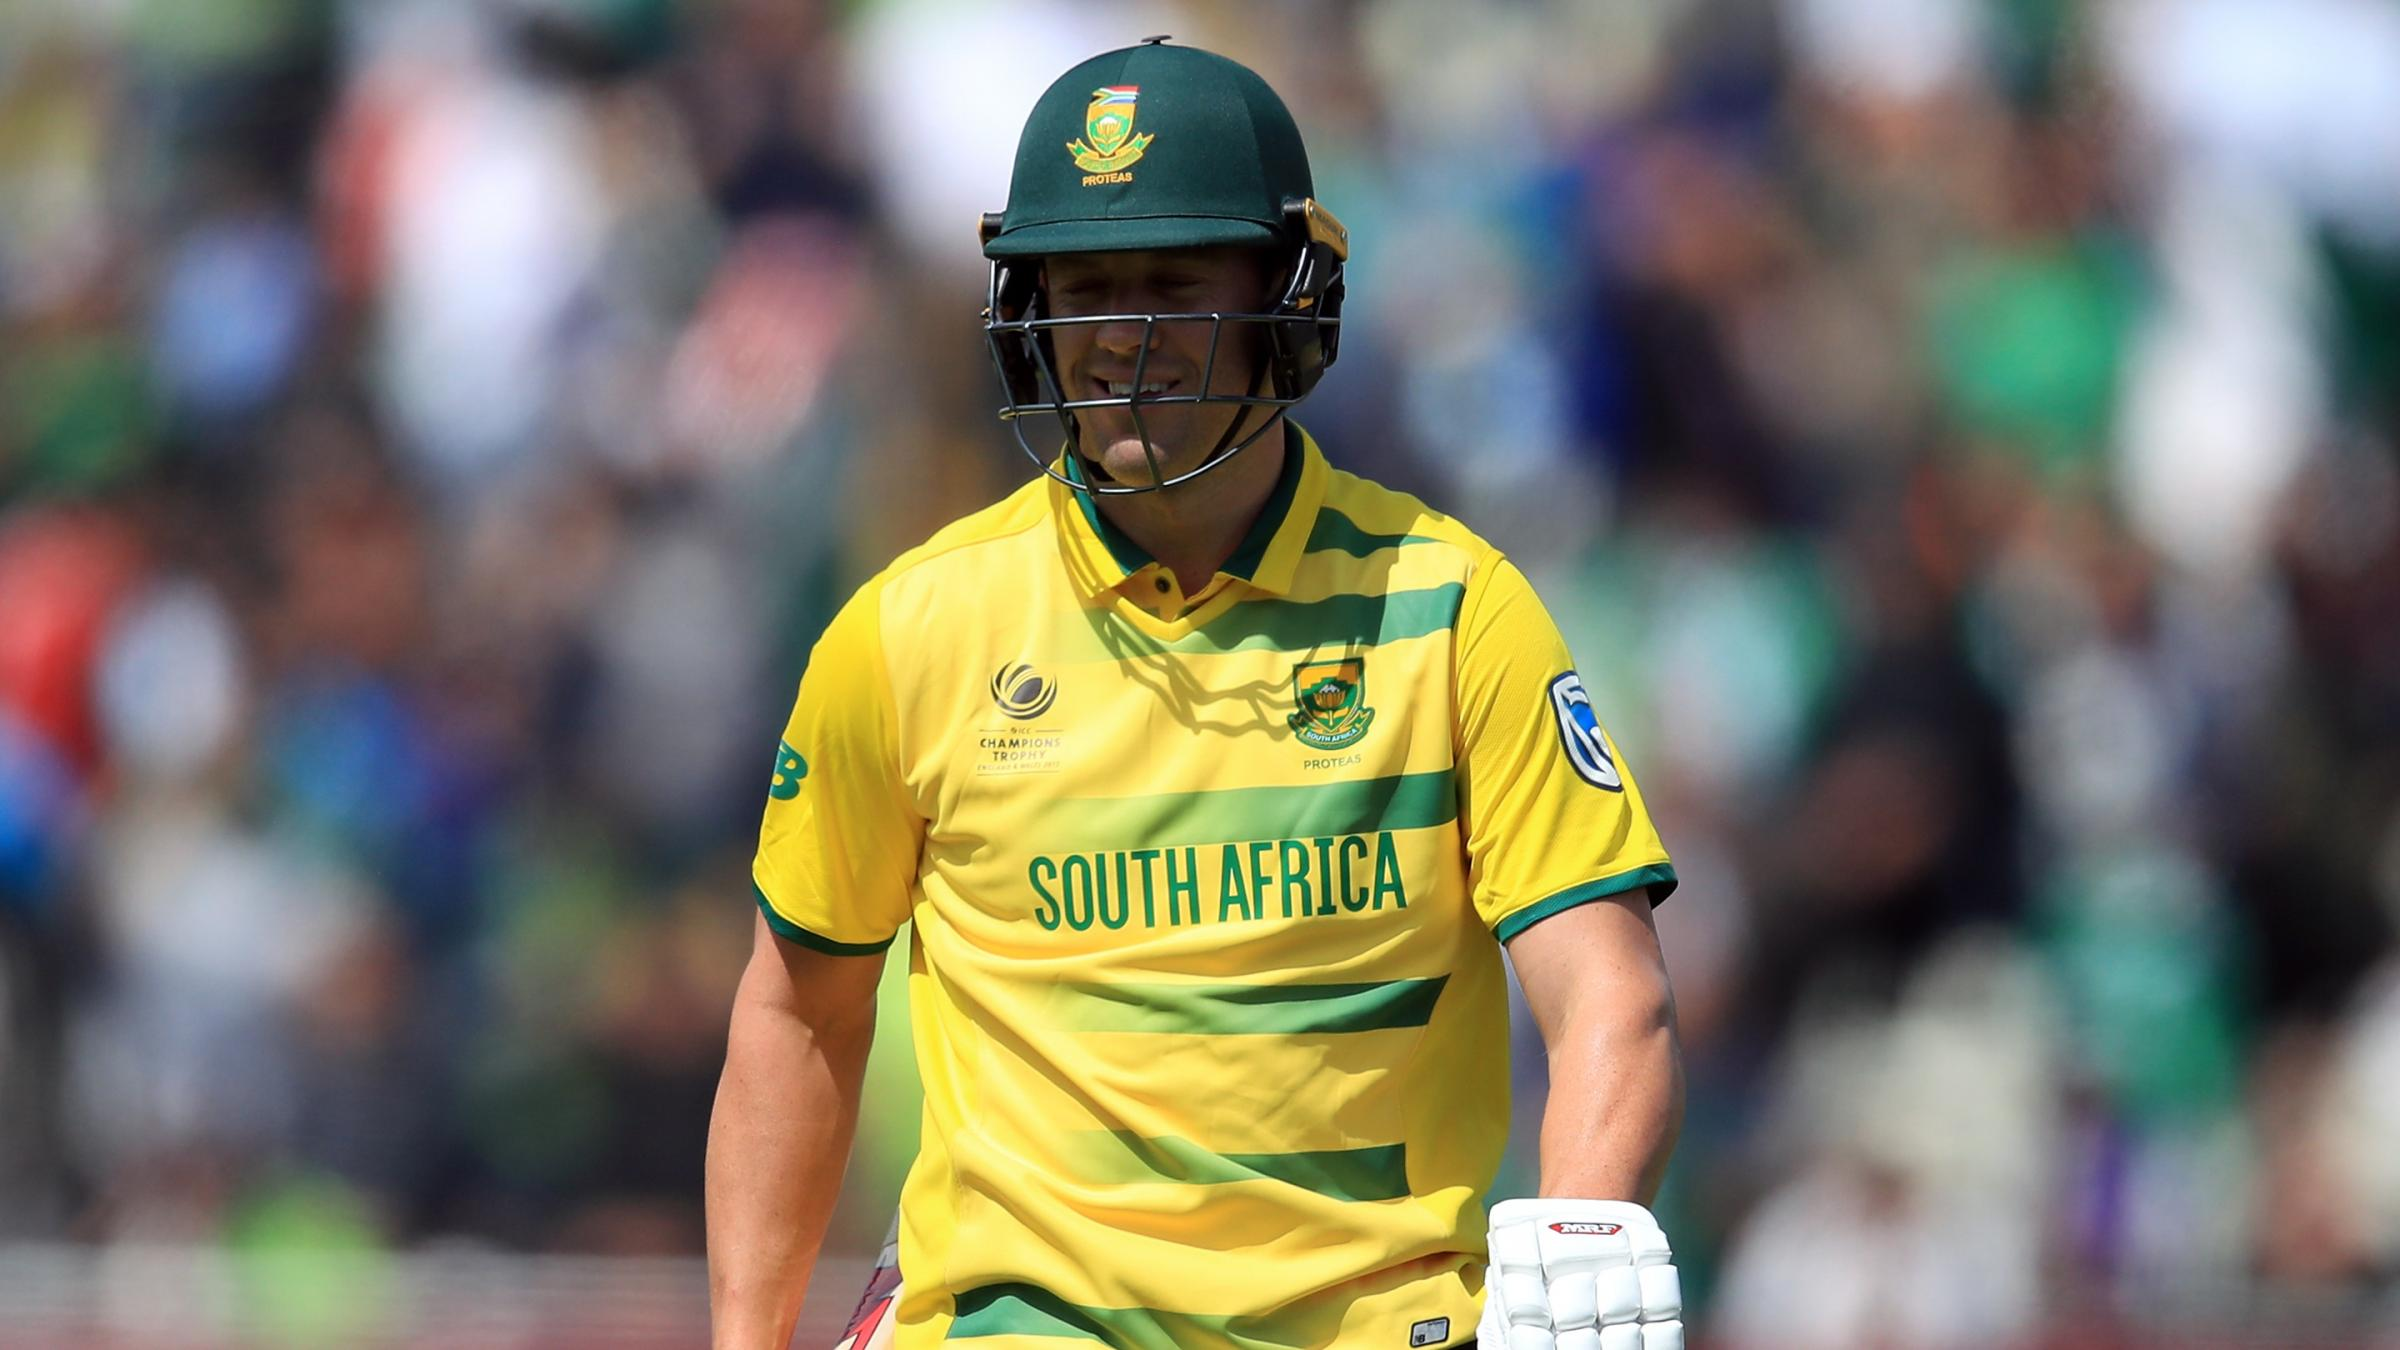 AB de Villiers to lead South Africa in T20I series against England